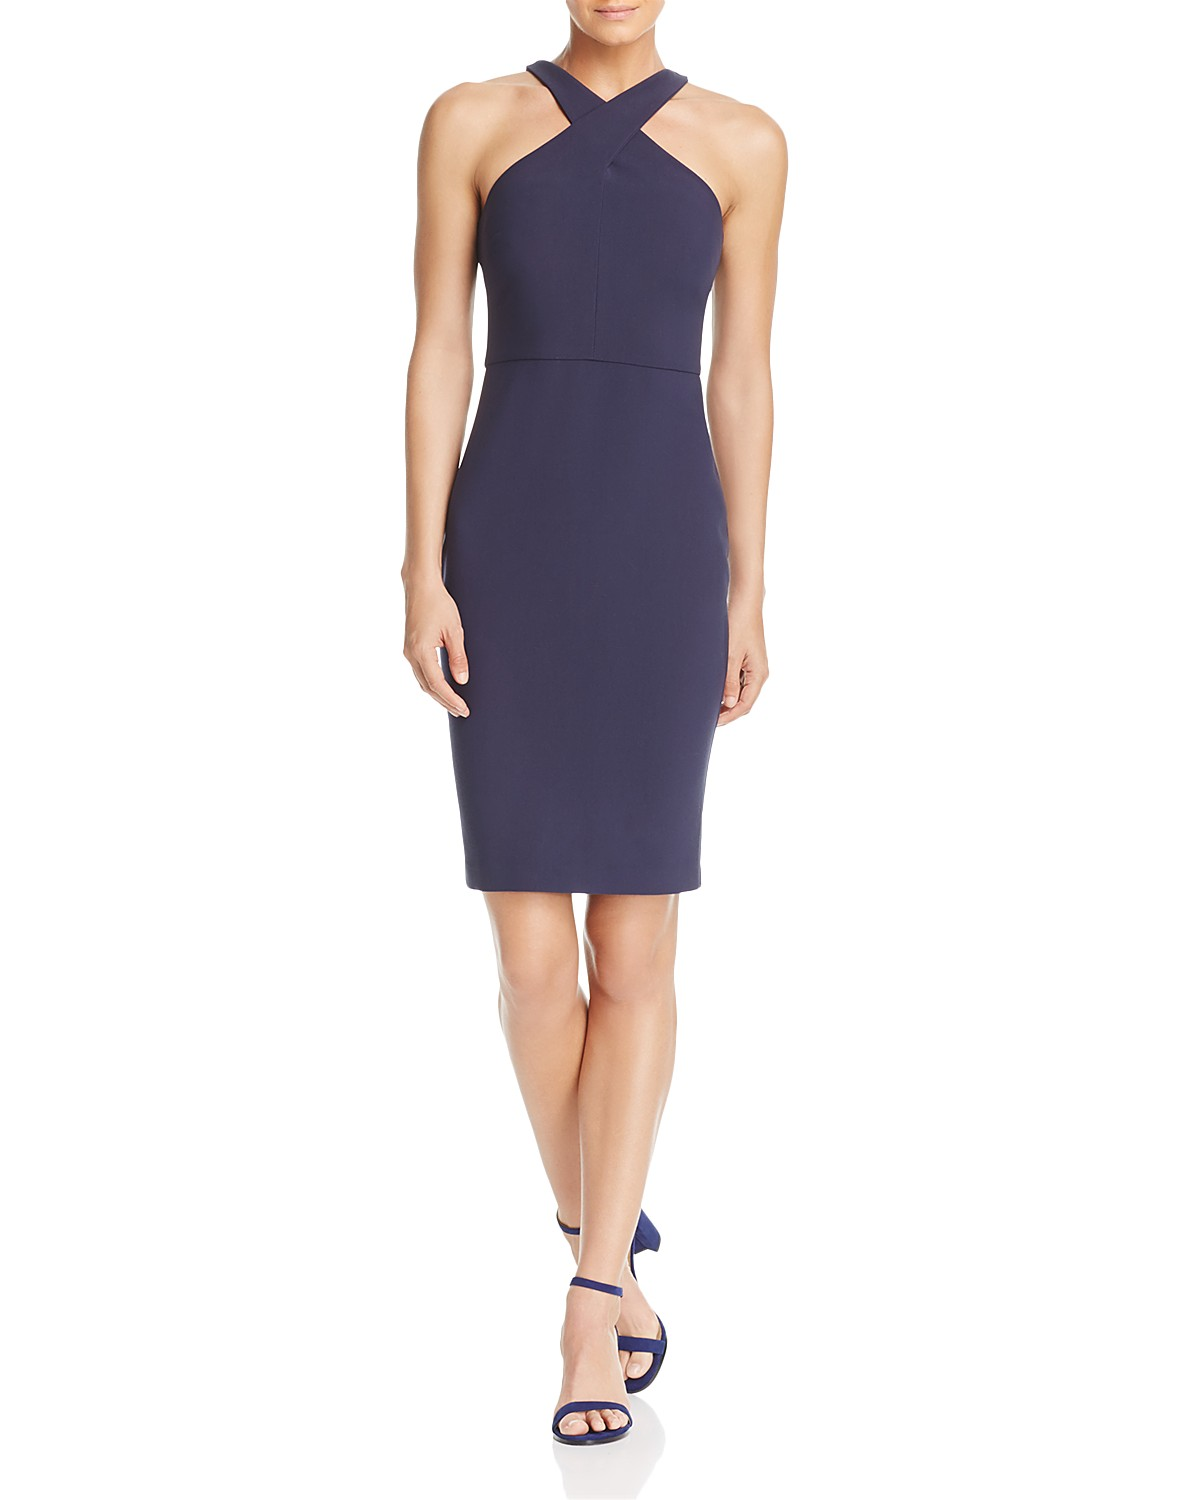 Asombroso Bloomingdales Cocktail Dress Imágenes - Ideas de Vestidos ...